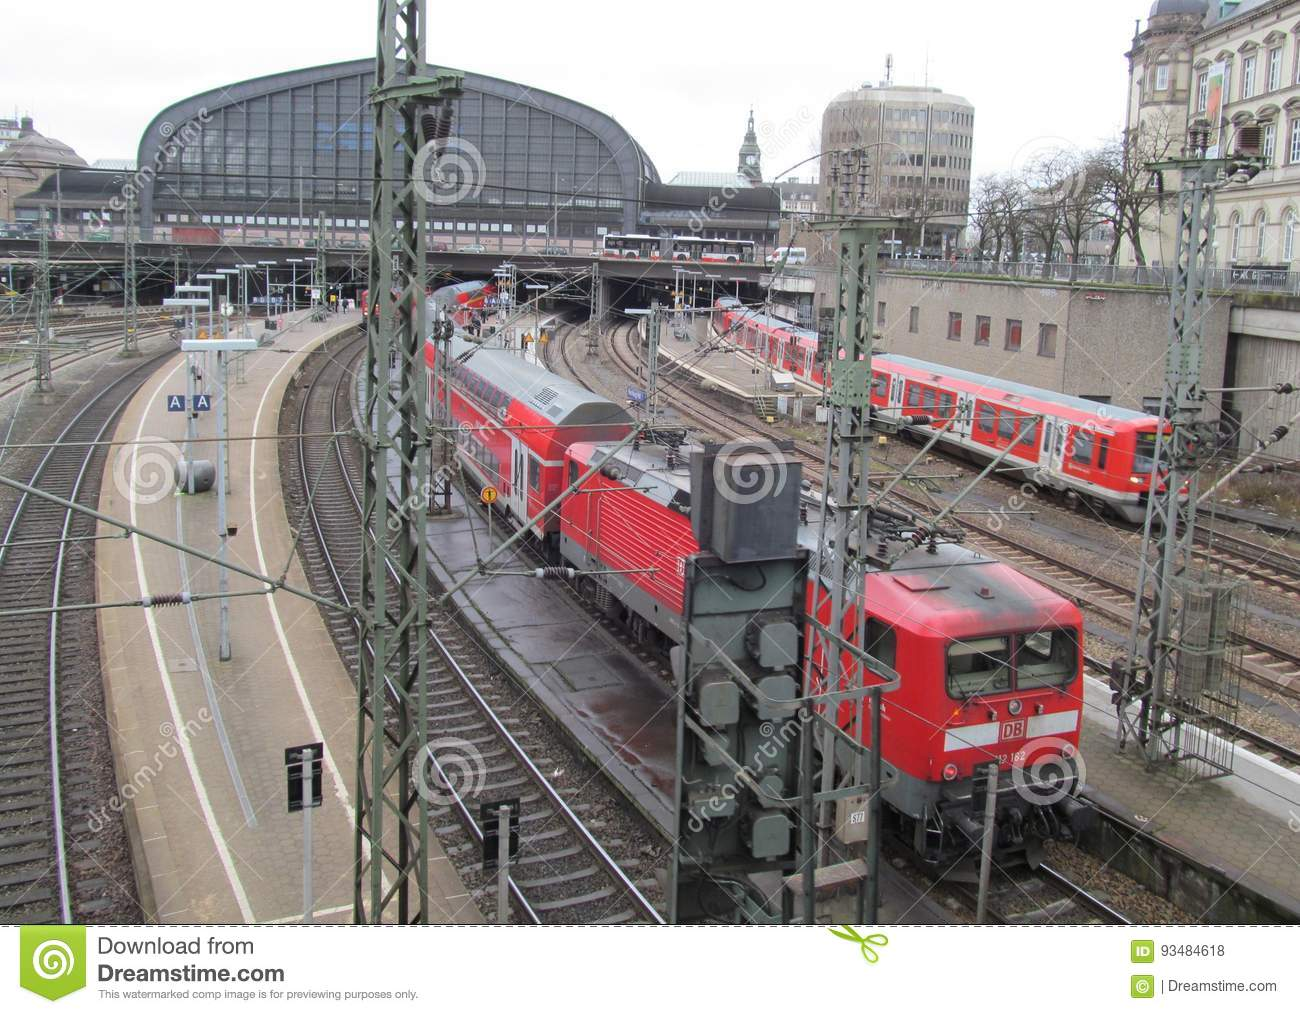 Hauptbahnhof in Hamburg, Germany. It is the main railway station in the city, the busiest in the country and the second